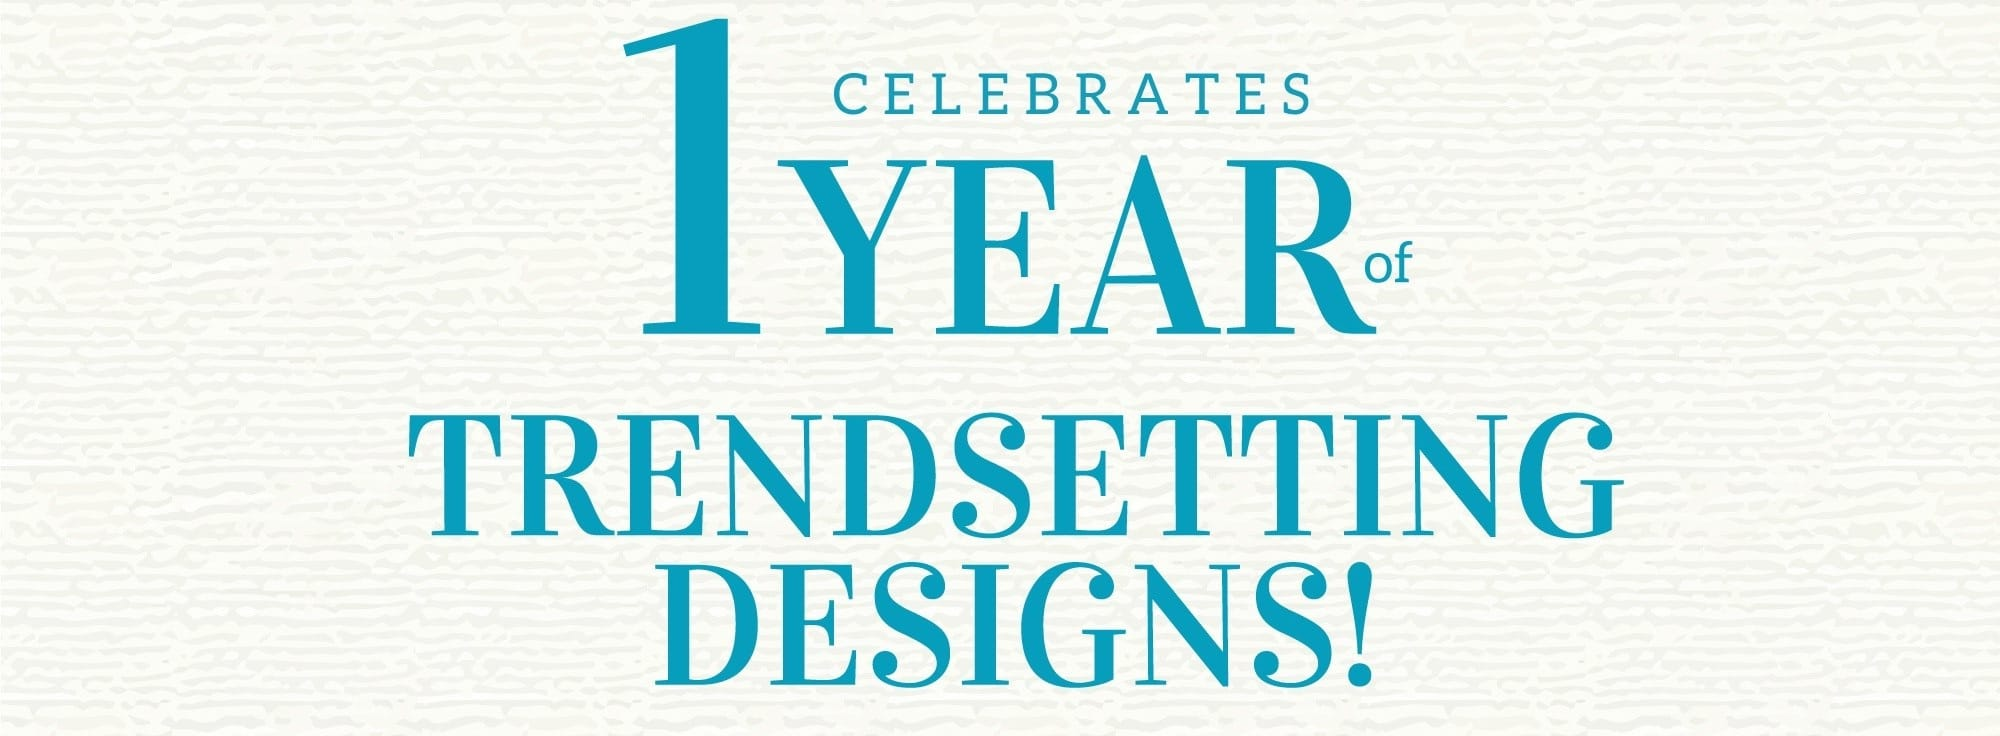 ZUO Décor celebrates its 1 Year Anniversary of Trendsetting